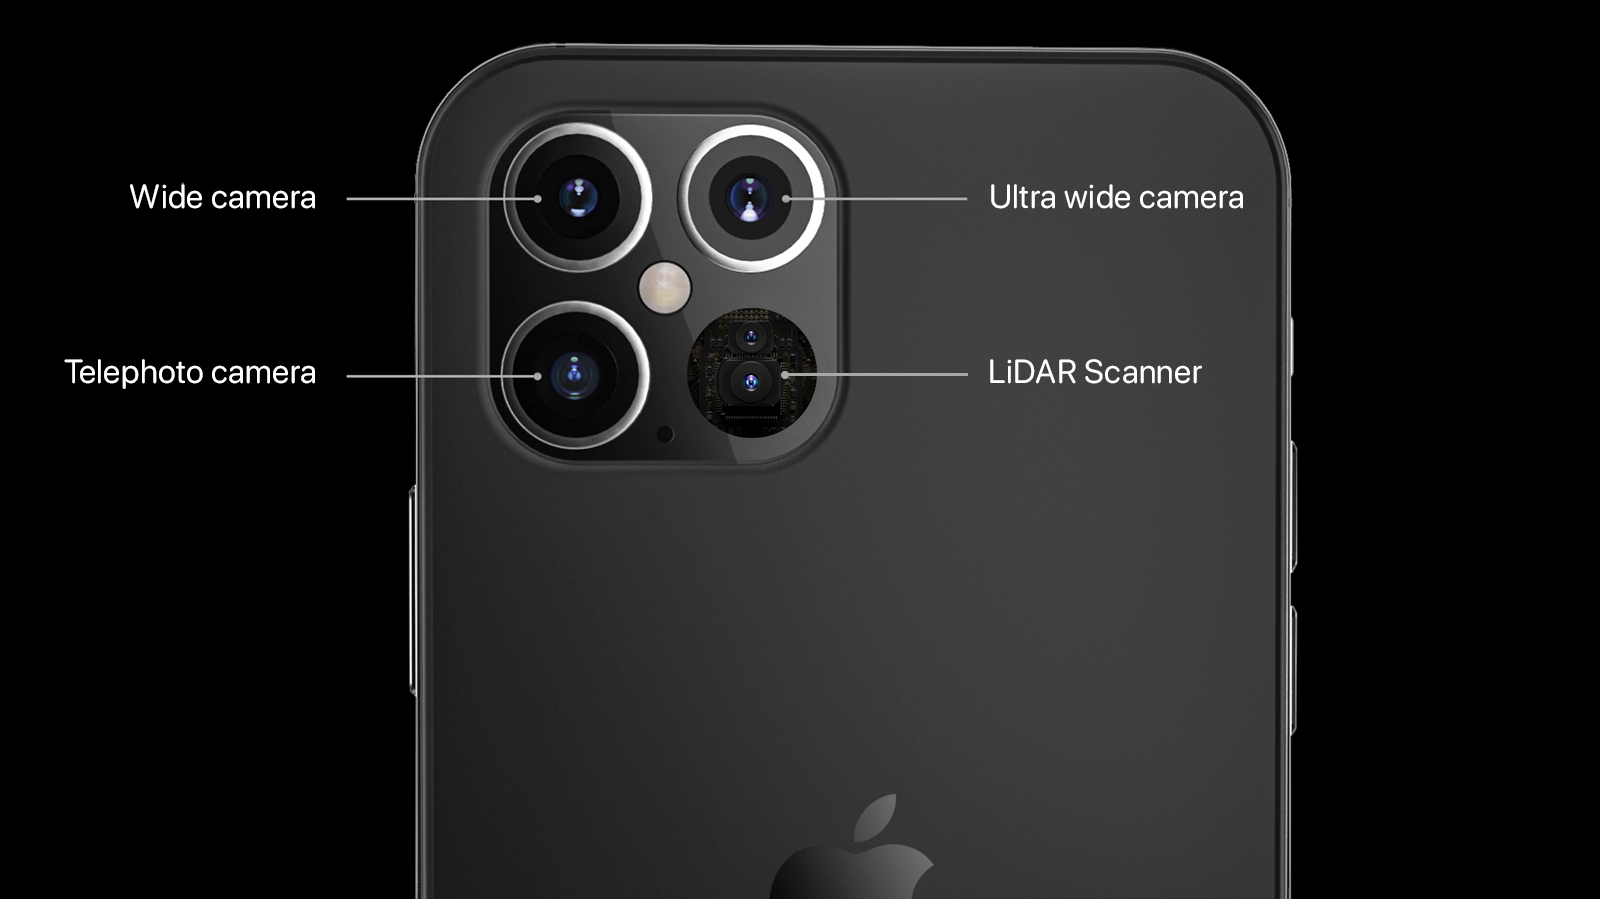 An example of what the iPhone 12 Pro camera could look like